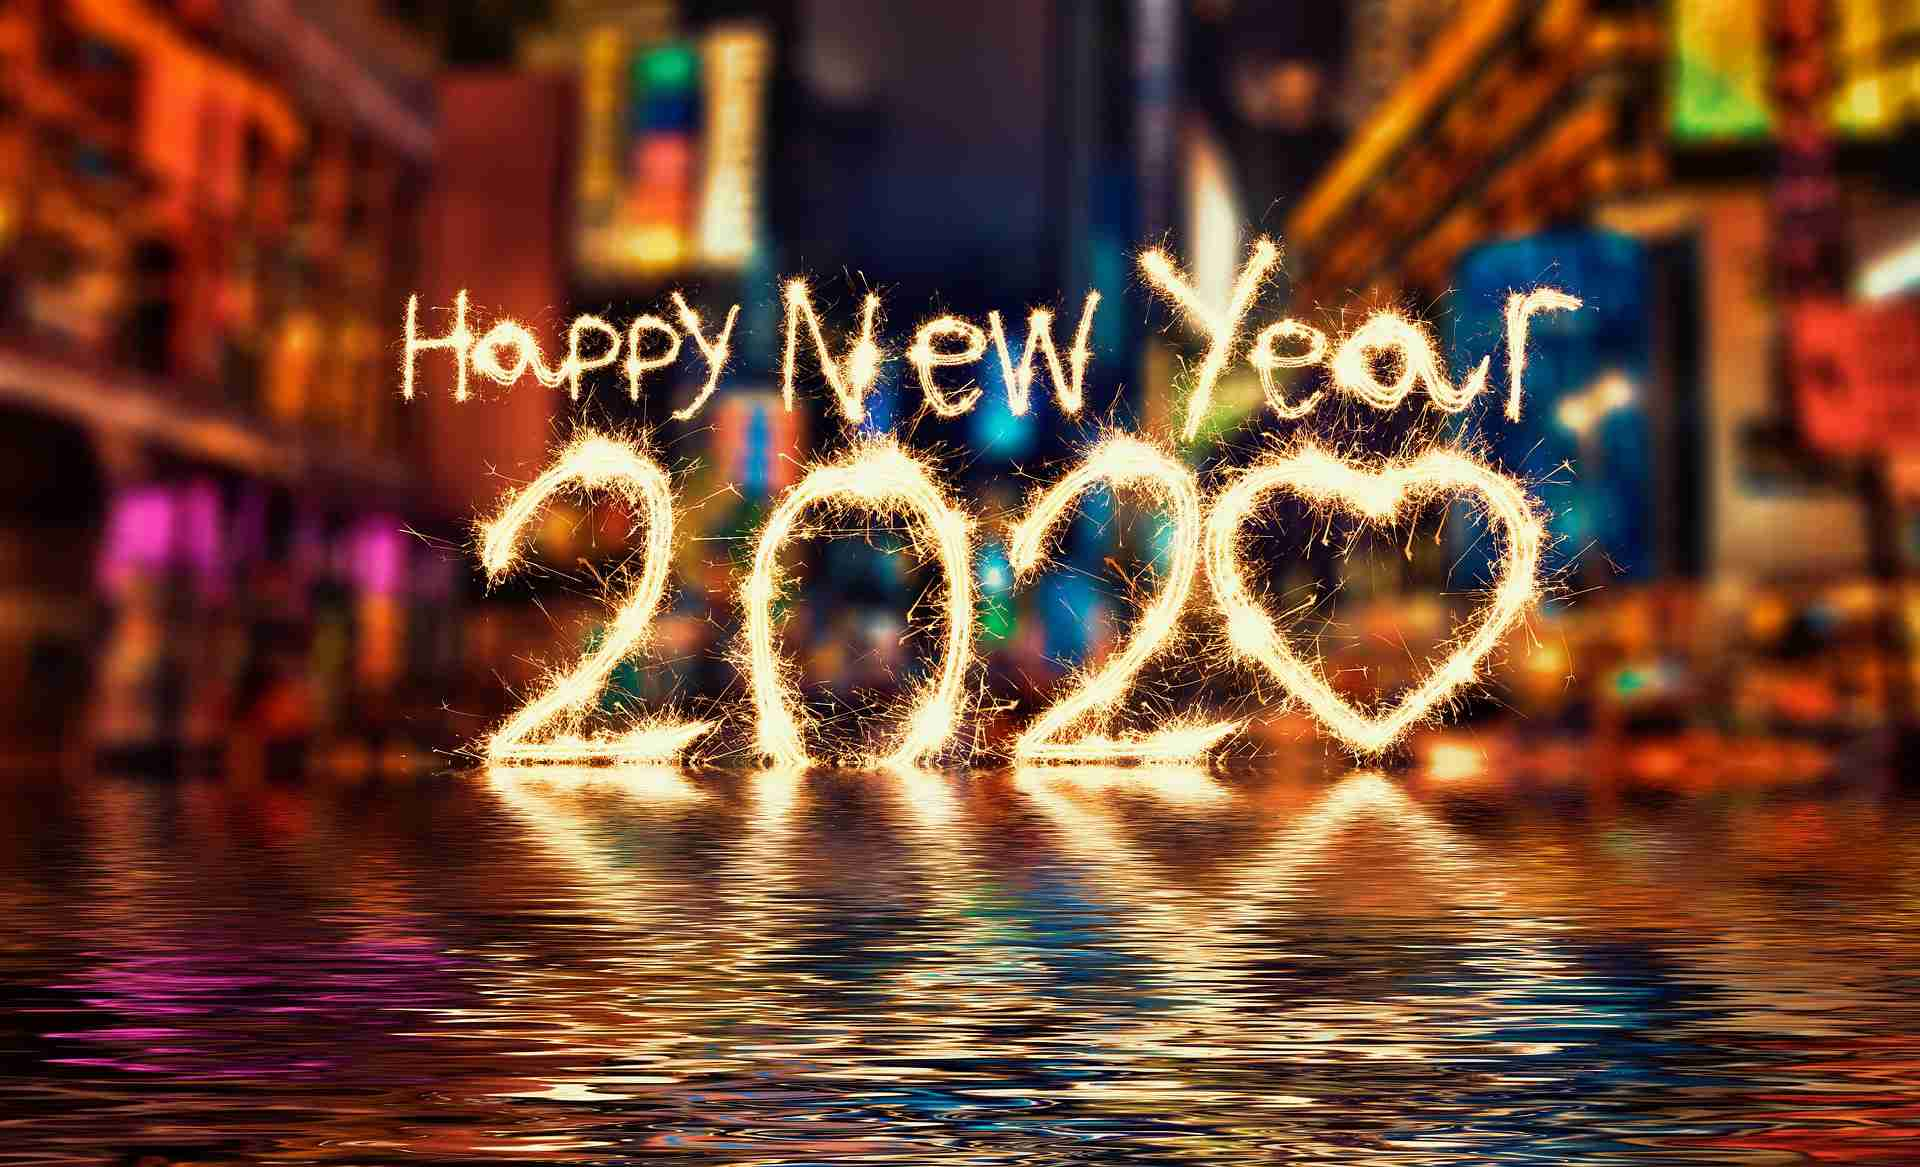 Happy New Year Images 2020 New Year Wishes Quotes